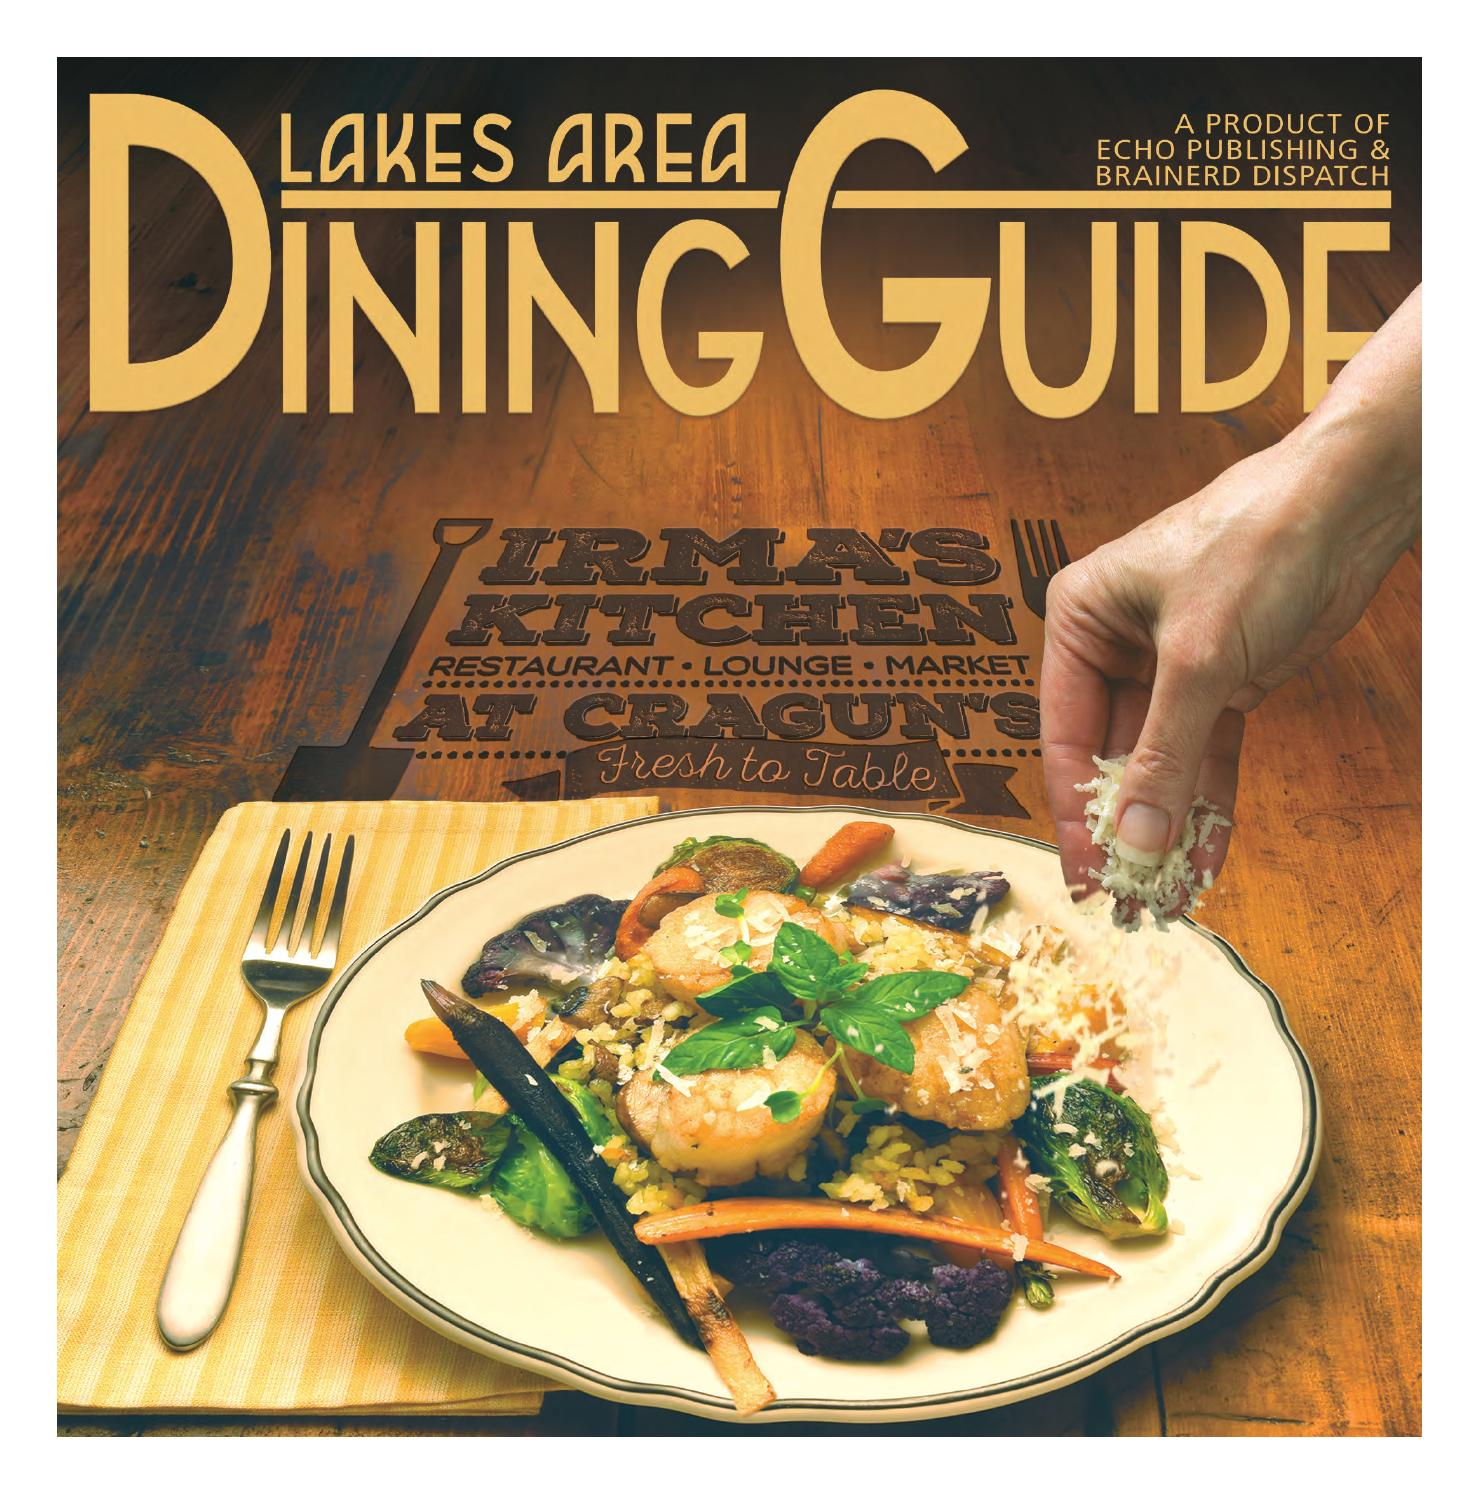 Lakes Area Dining Guide 2016 by Brainerd Dispatch   issuu of Forest Lake Restaurants Dining Guide